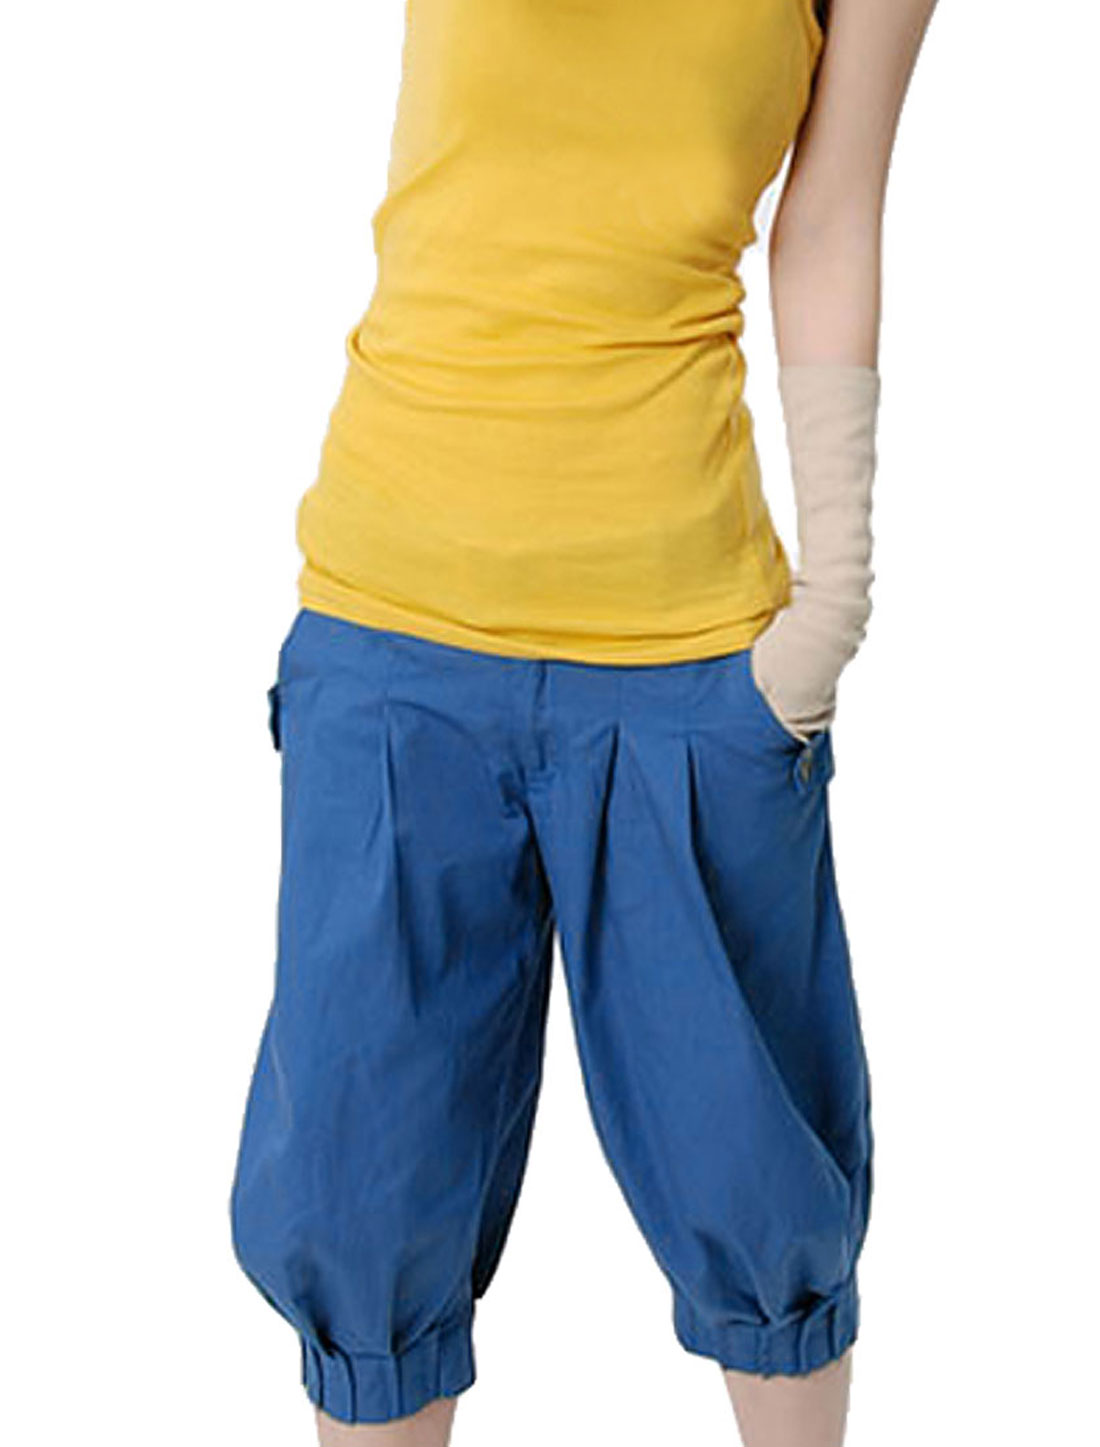 Blue Two Pocket Belt Loop Loose Leisure Capris Pants XS for Ladies